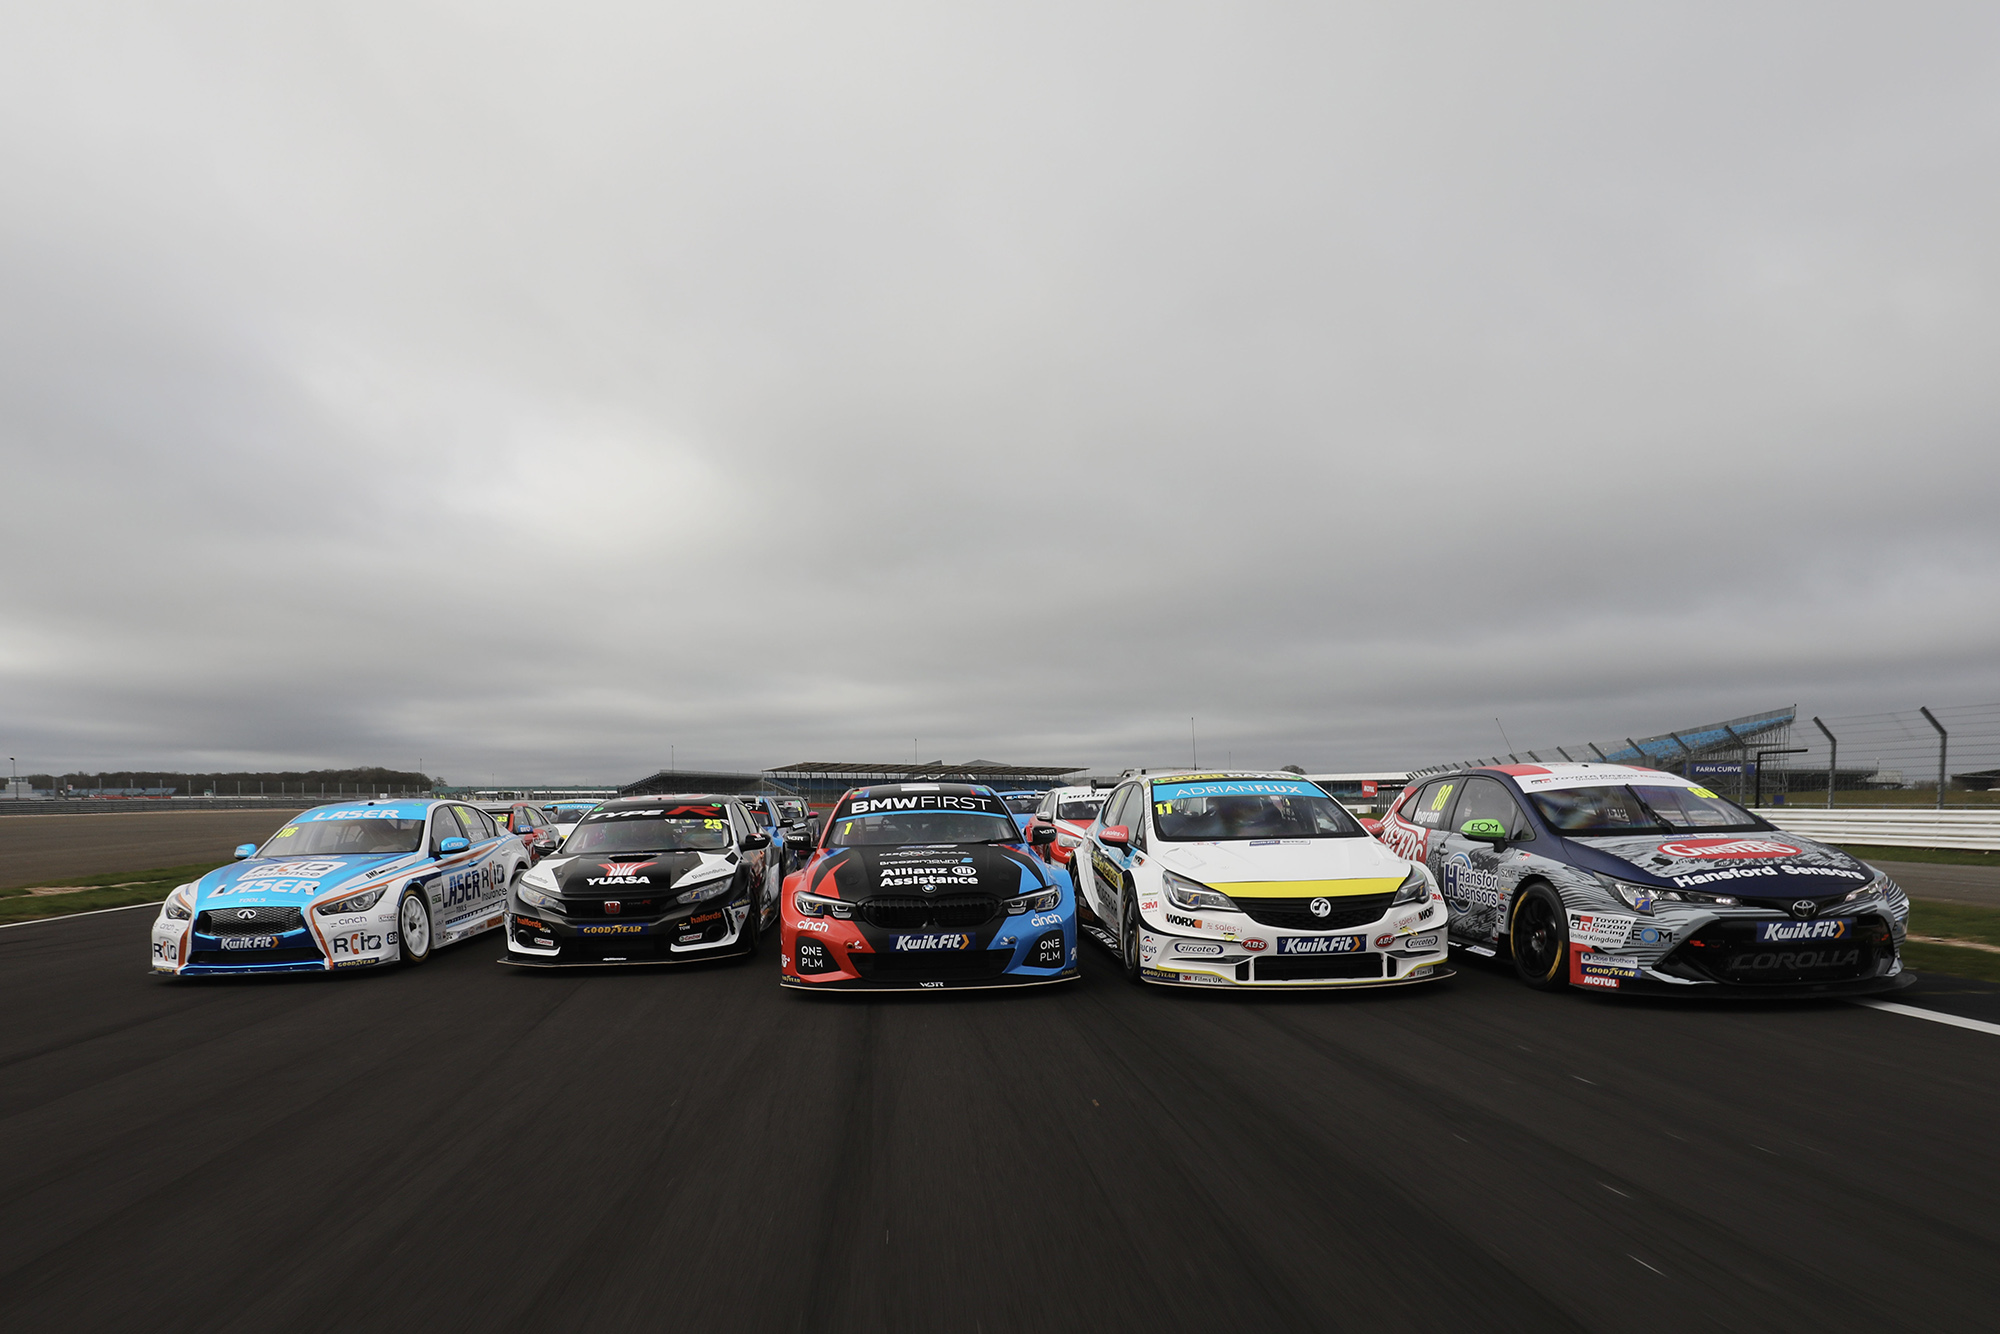 BTCC 2020 media day cars in a pack